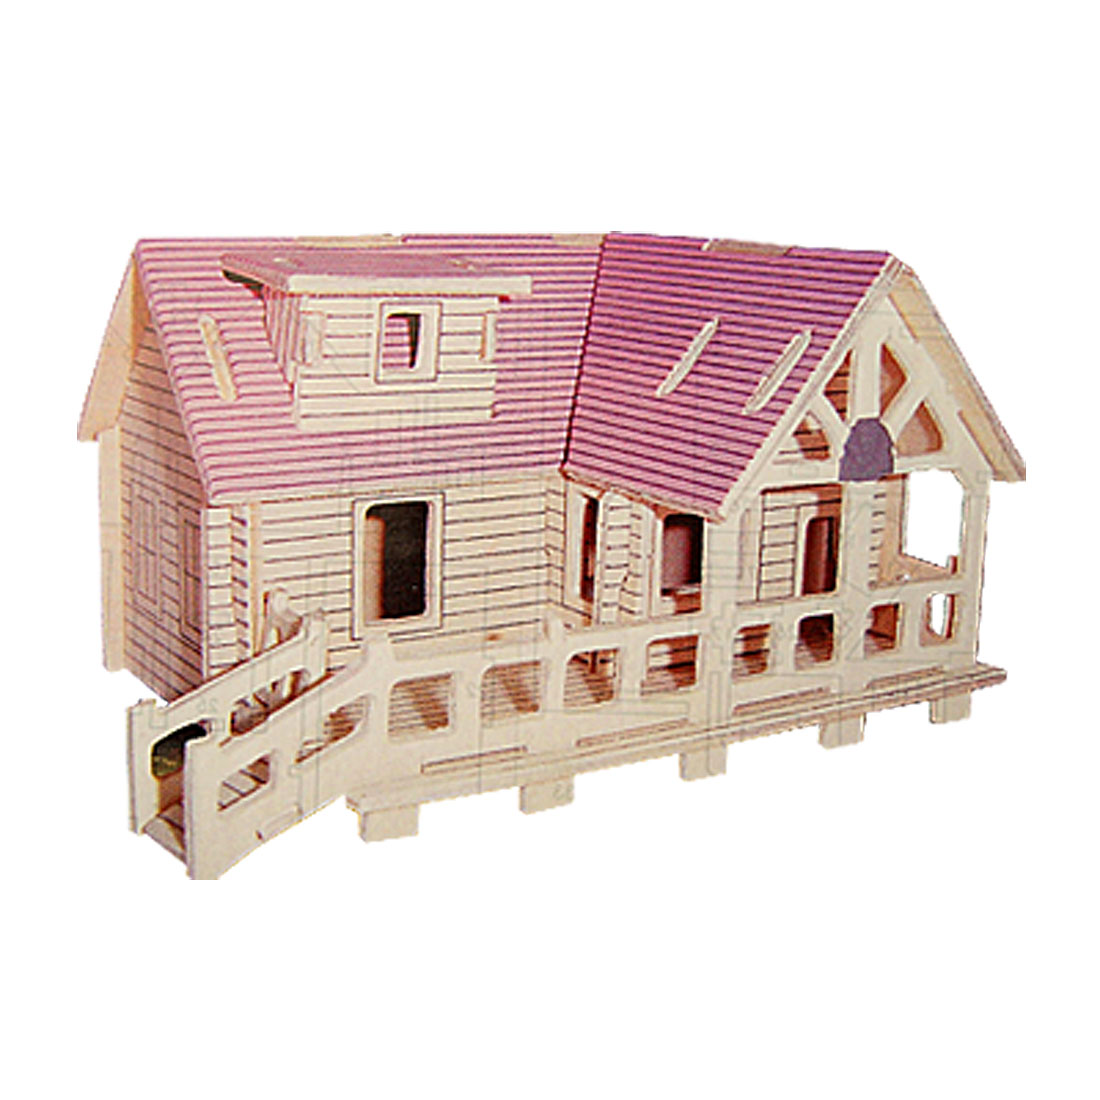 Stylish Educational 3D Jigsaw Villa Model Wooden Puzzle Toy